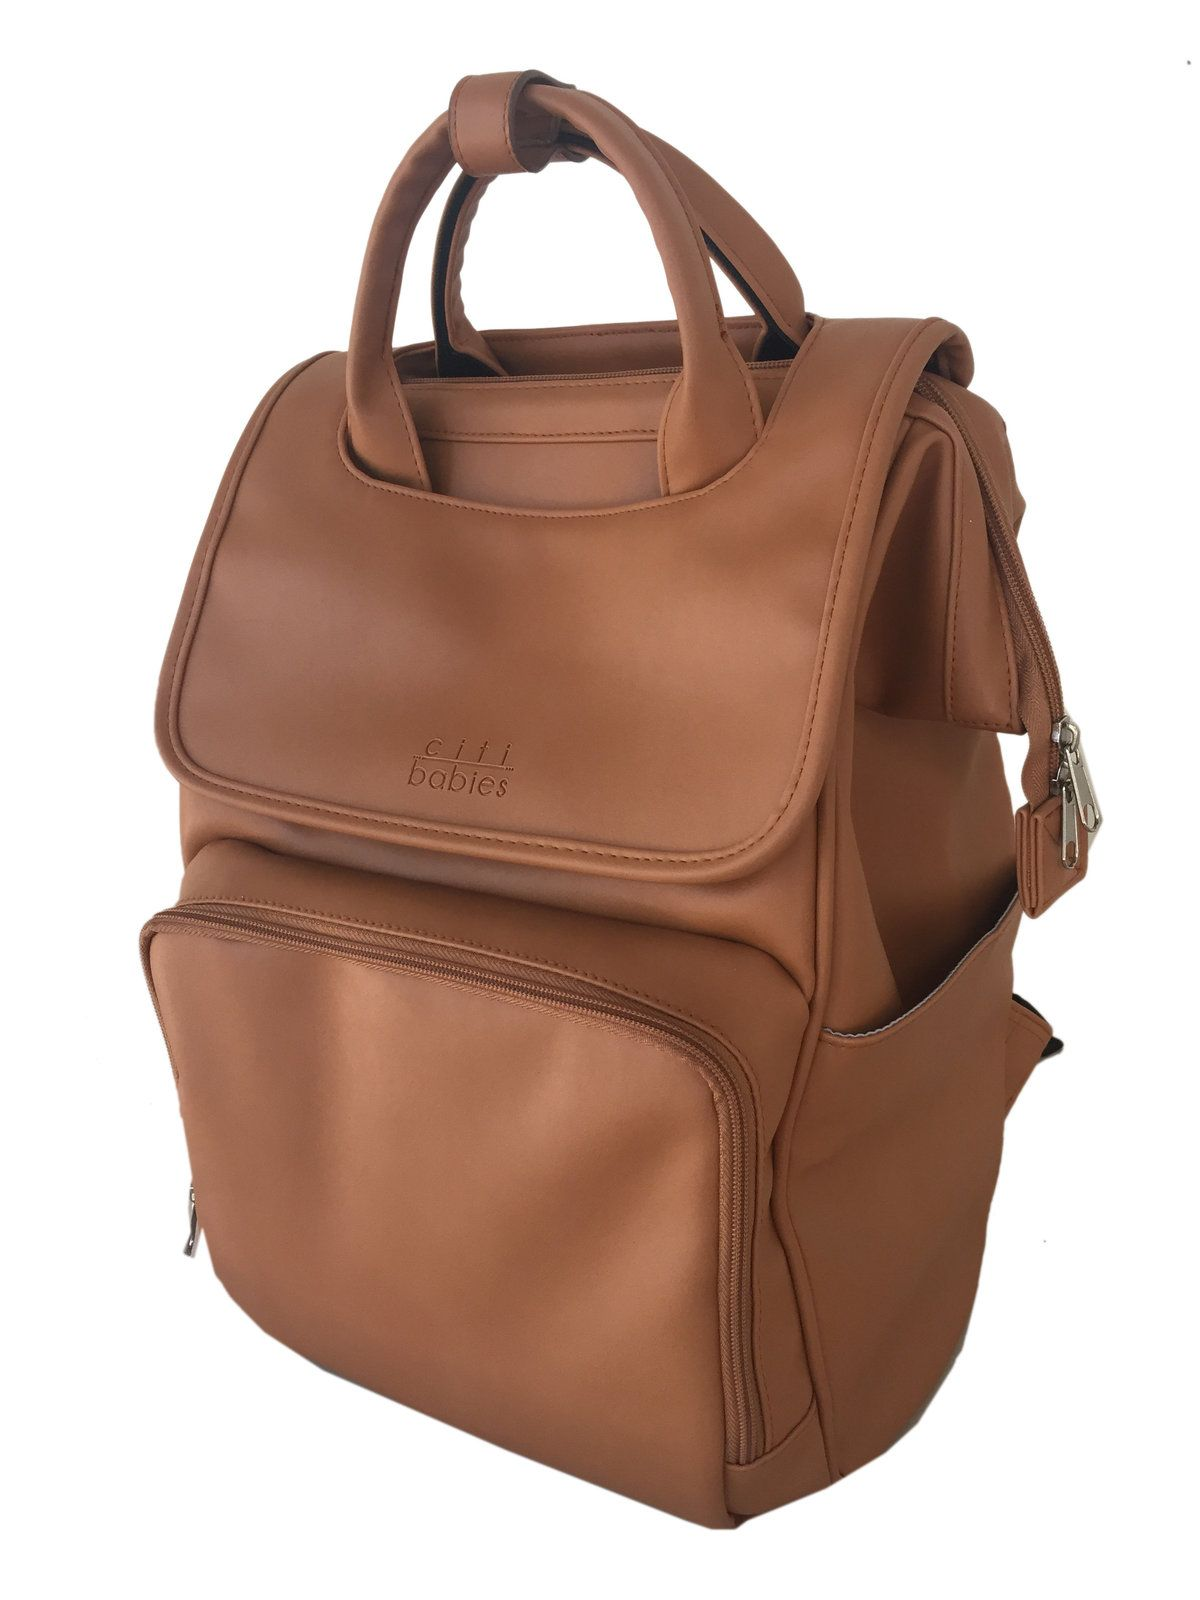 a40dfe32eaf35 The Explorer faux leather diaper bag is the perfect mixture of beauty,  brains and brawn . Modern style, waterproof, and 10 organized pockets, ...